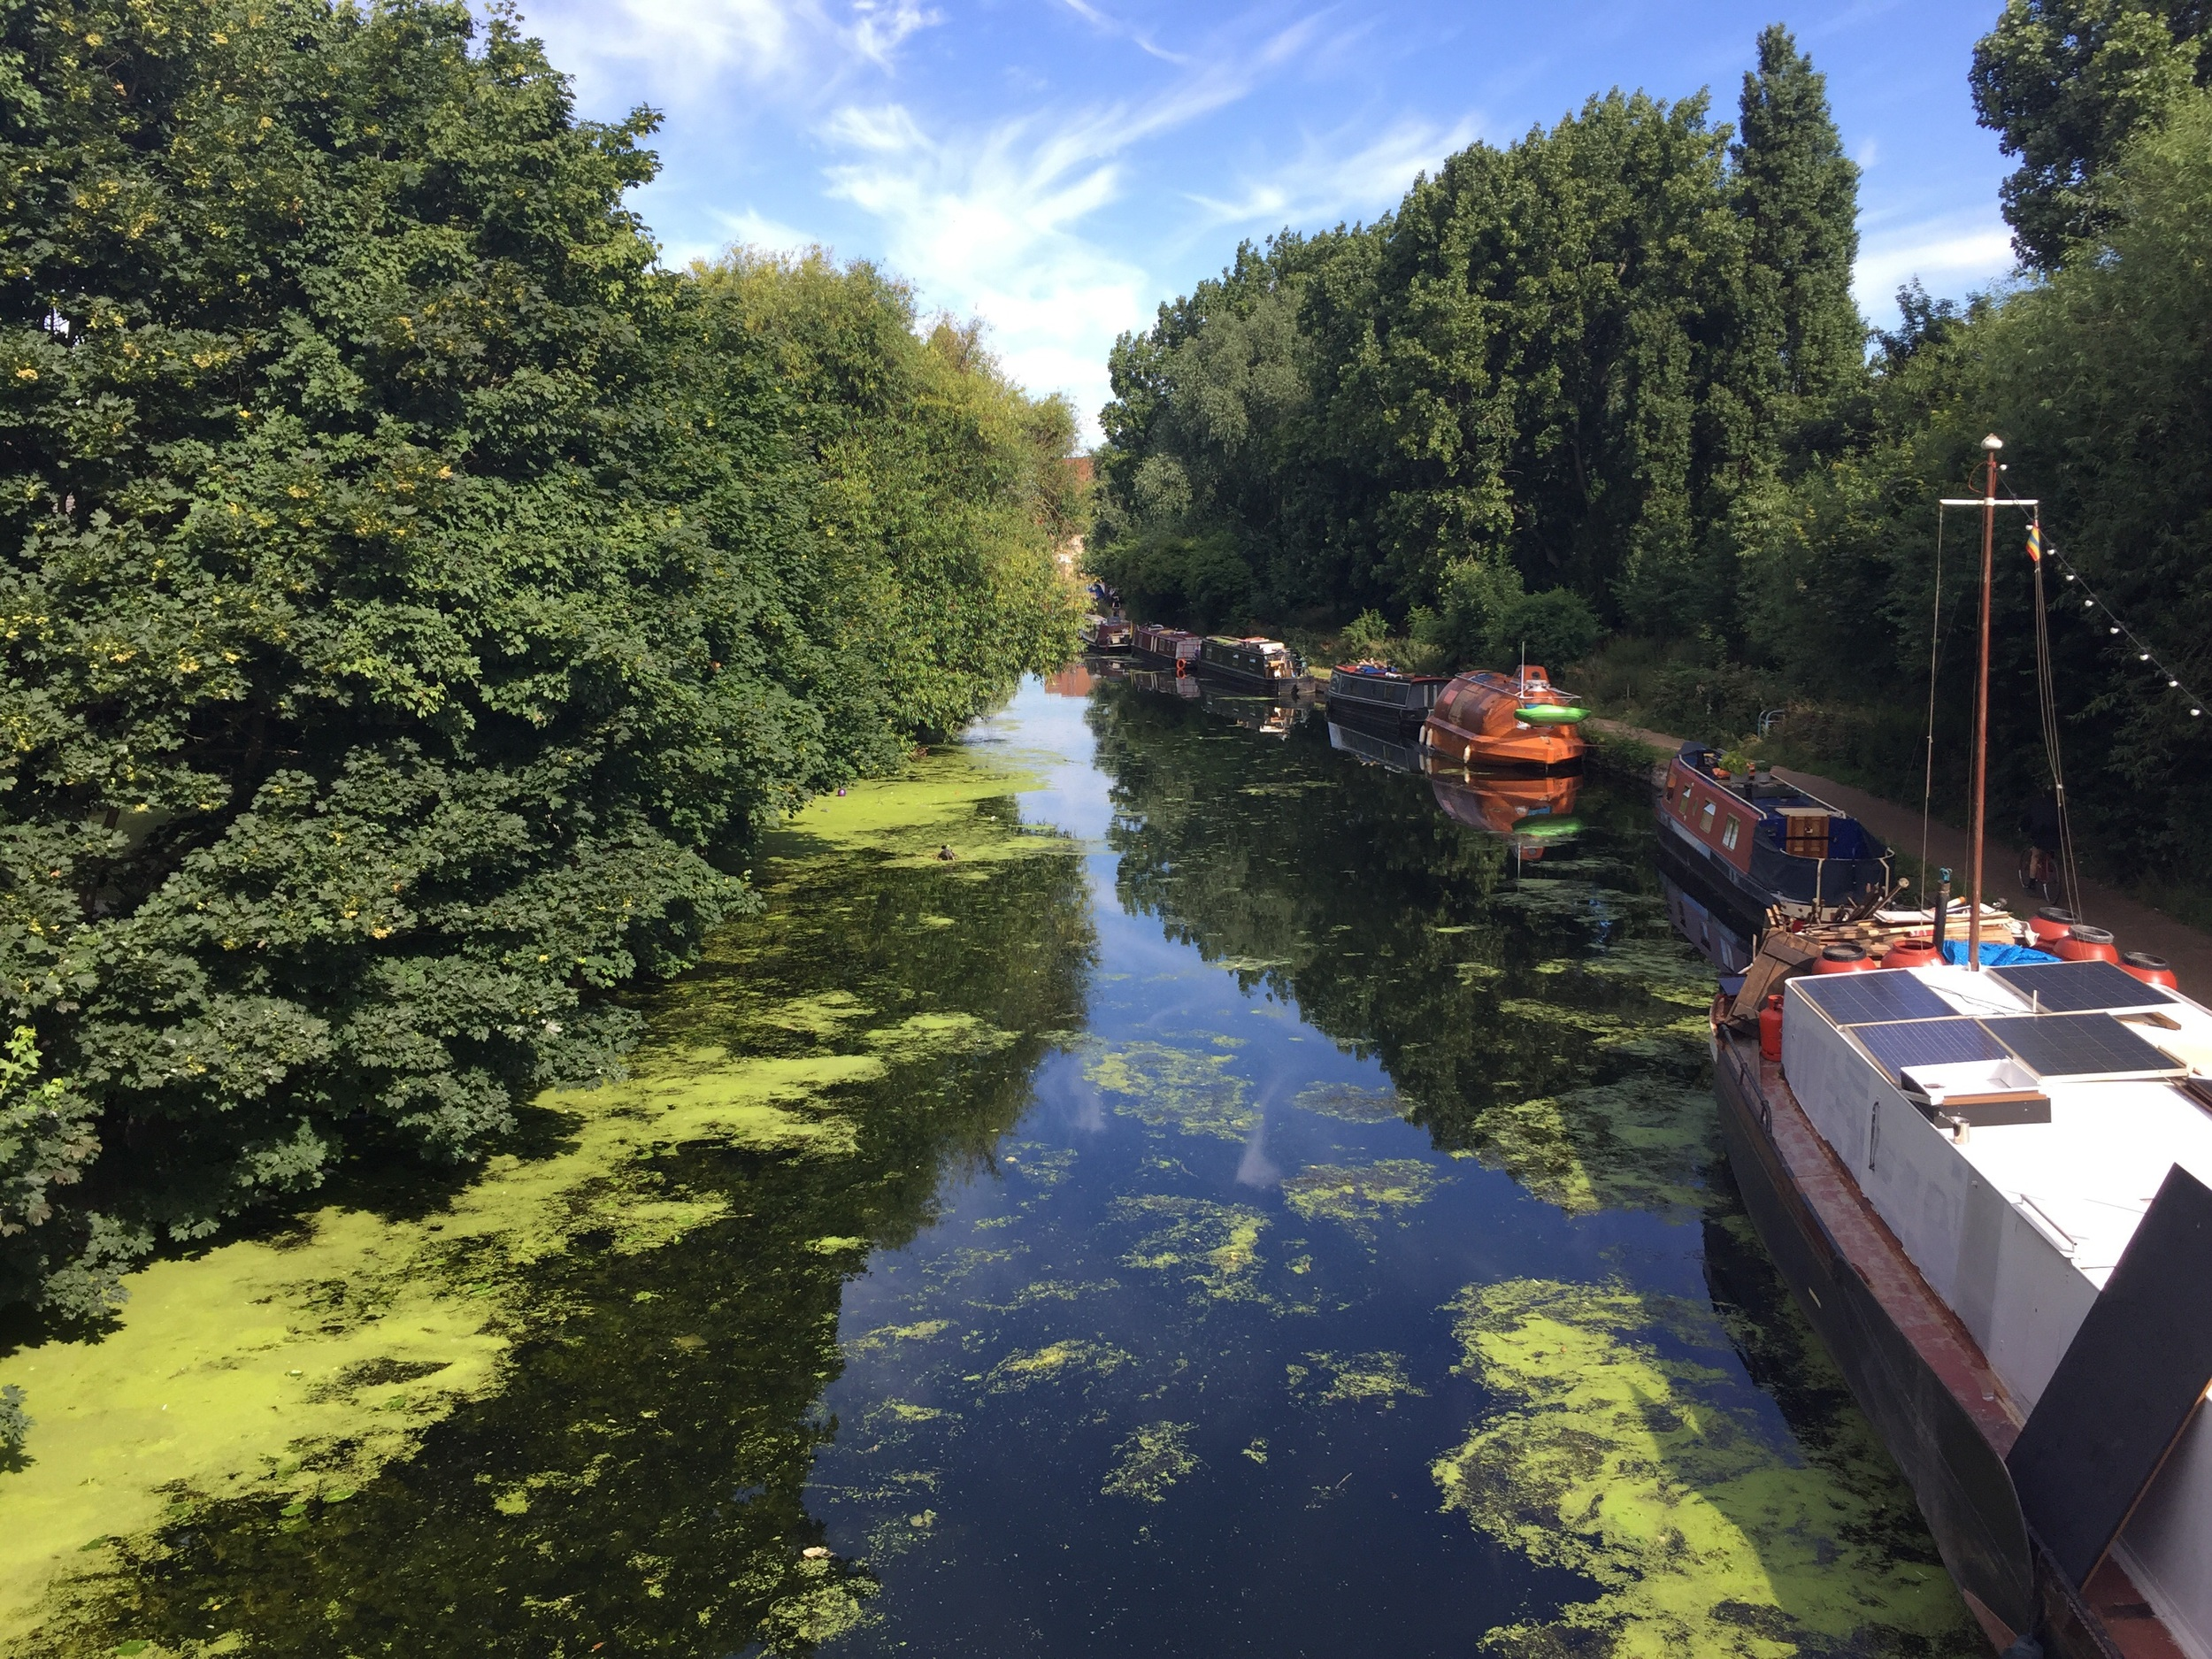 Working on the river lea this week and she's looking good